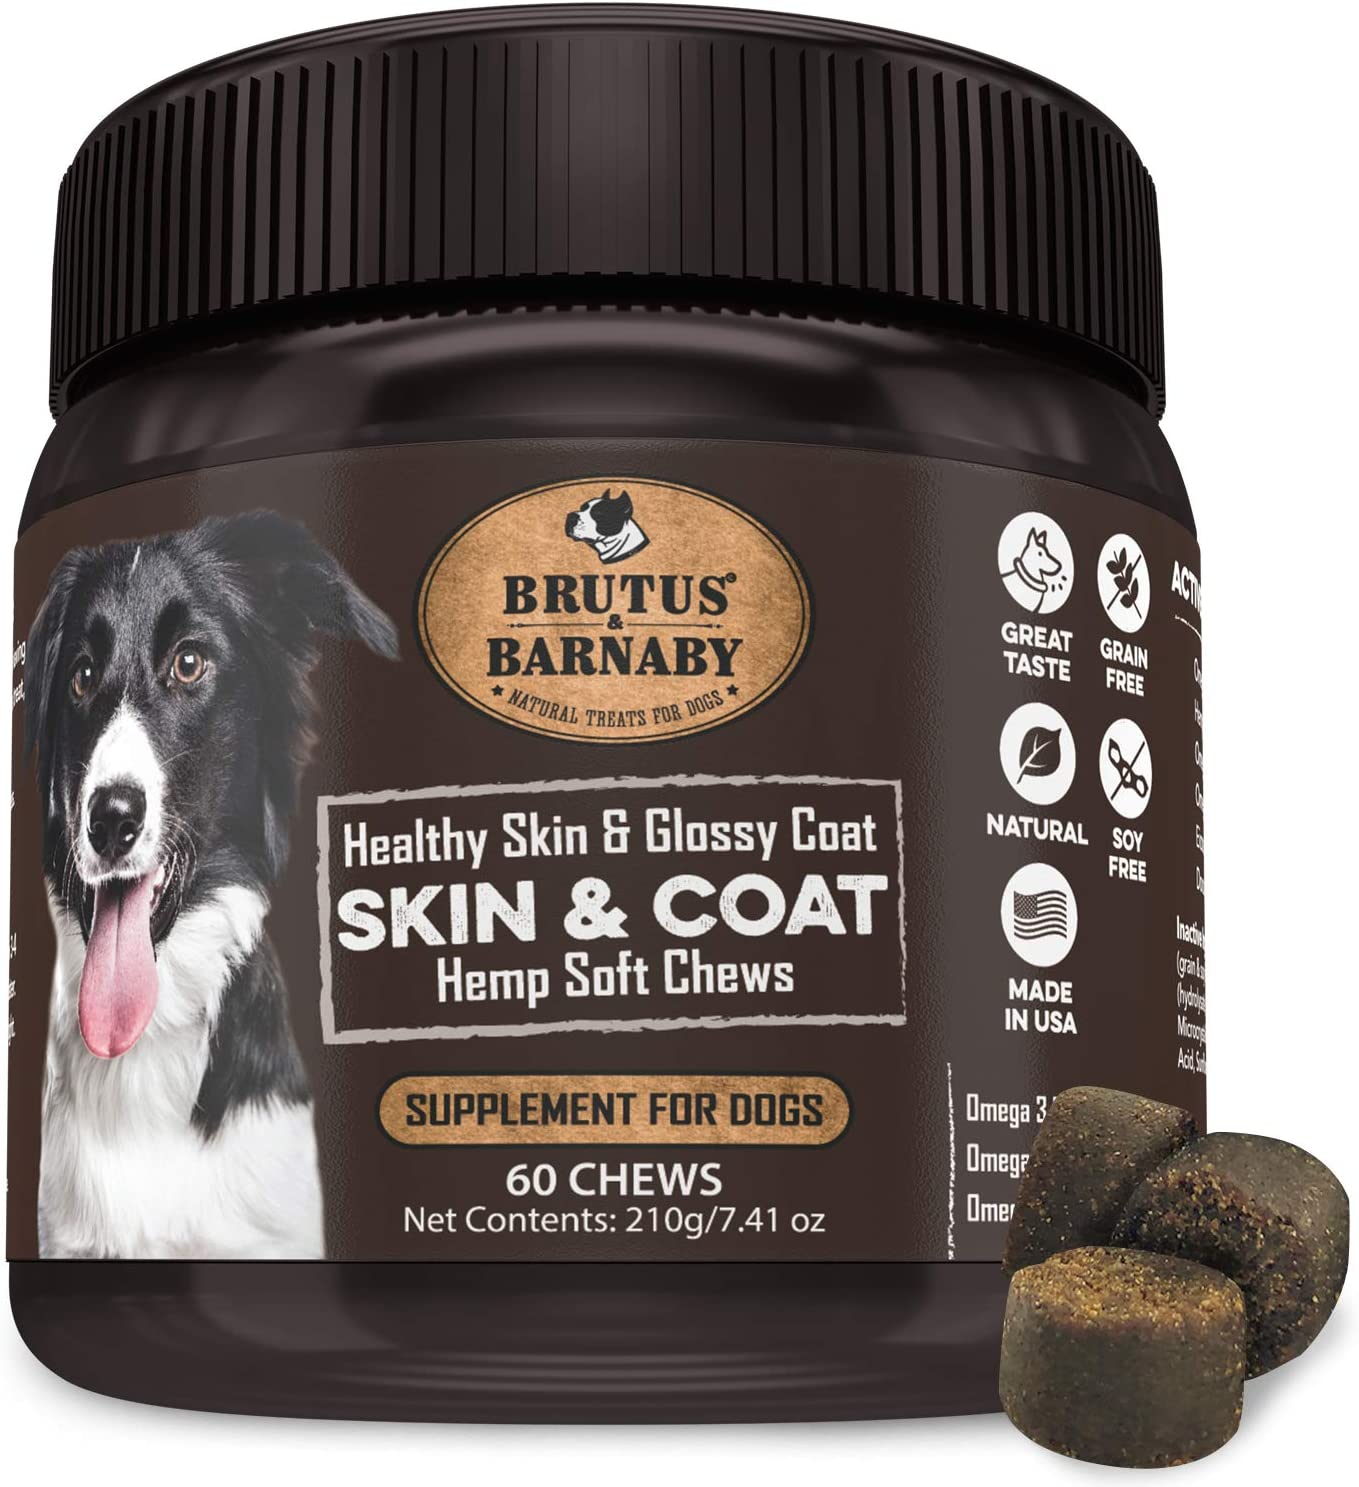 Omega 3 Fish Oil for Dogs - Easy to Deliver Skin and Coat Soft Chew, Organic Hemp, Coconut Oil, EPA,DHA ; Dog Skin Allergy Treatment for Itch-Free Skin, Increases Shiny Coat, Vitamin C & E